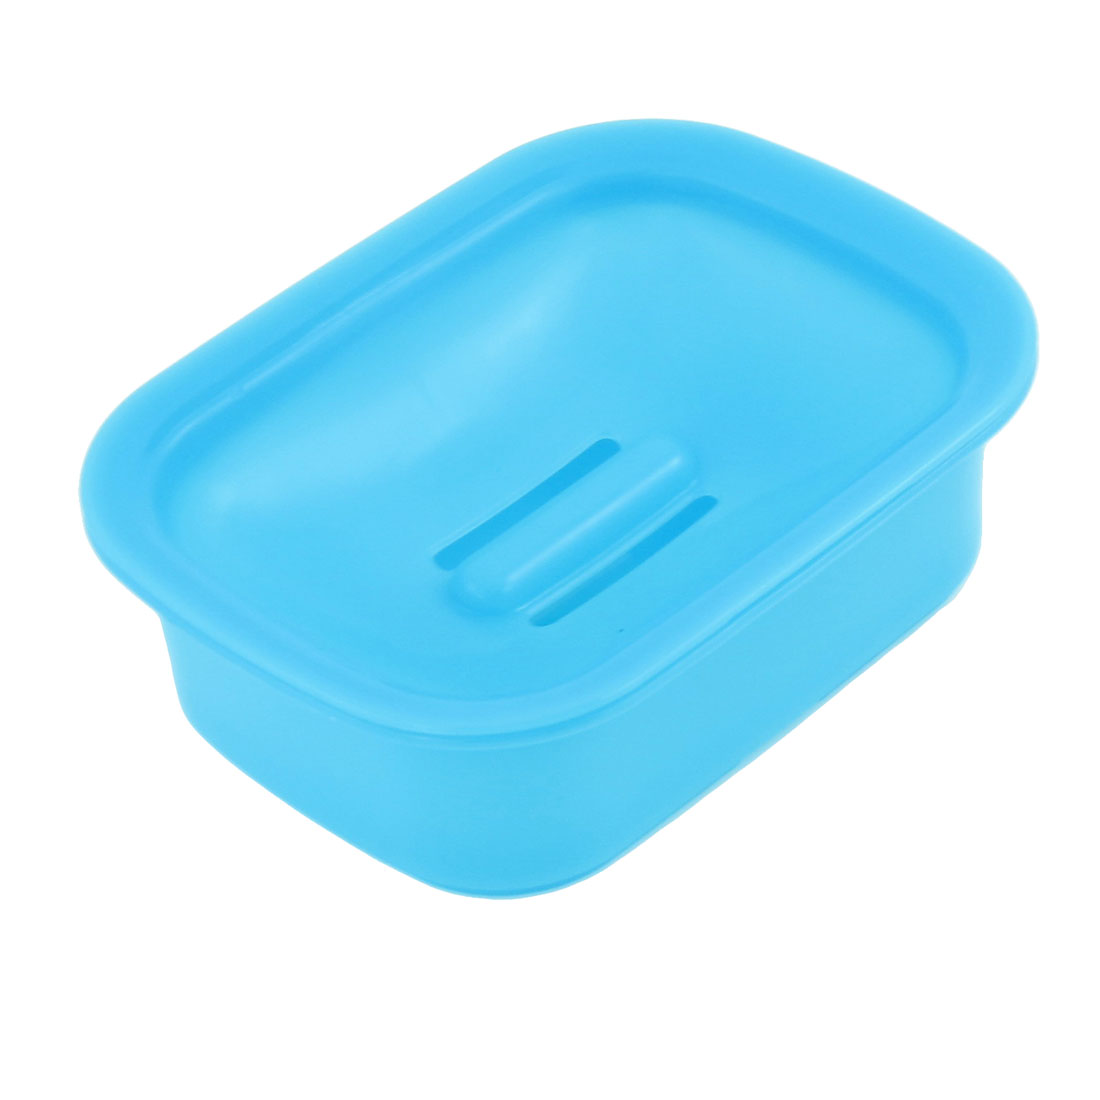 13.5cm x 10.4cm Blue Plastic Hollow Out Bottom Soap Container Case Holder